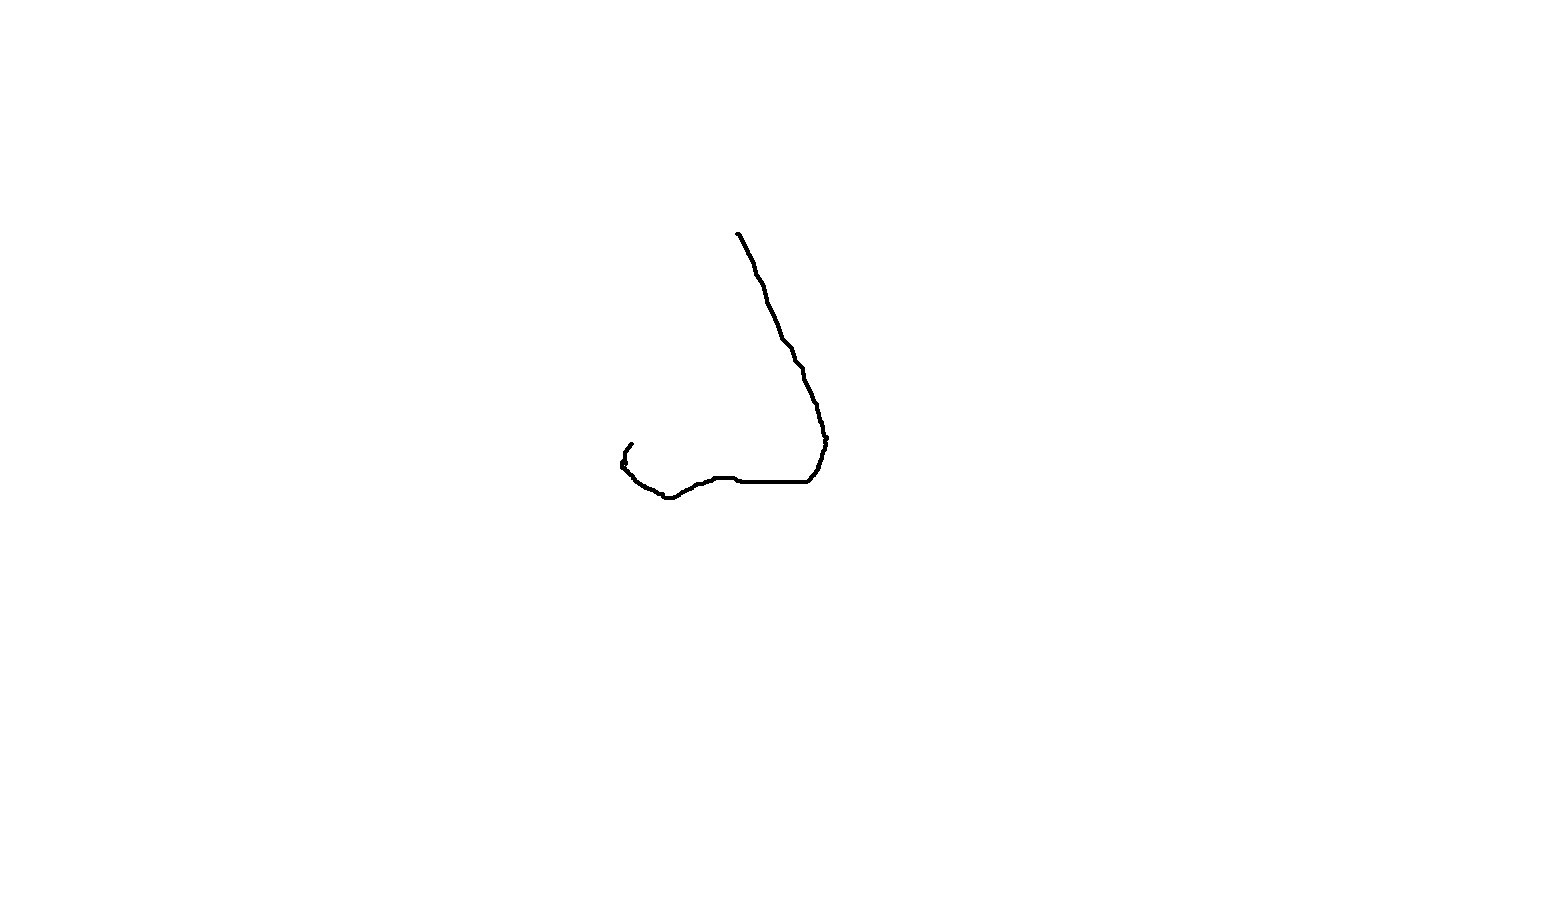 Line Drawing Nose : More drawings of noses drawing a simple cartoon nose pictures